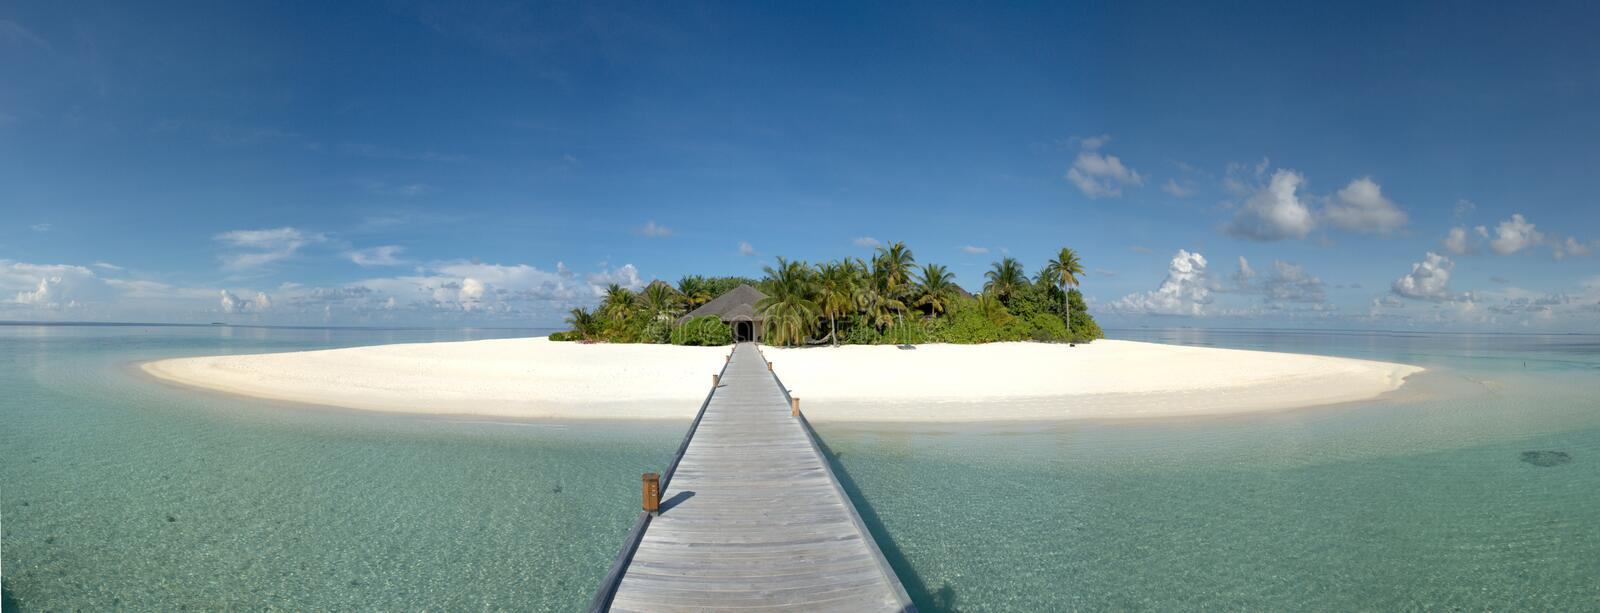 Way to paradise. Island resort in the Maldives stock photography